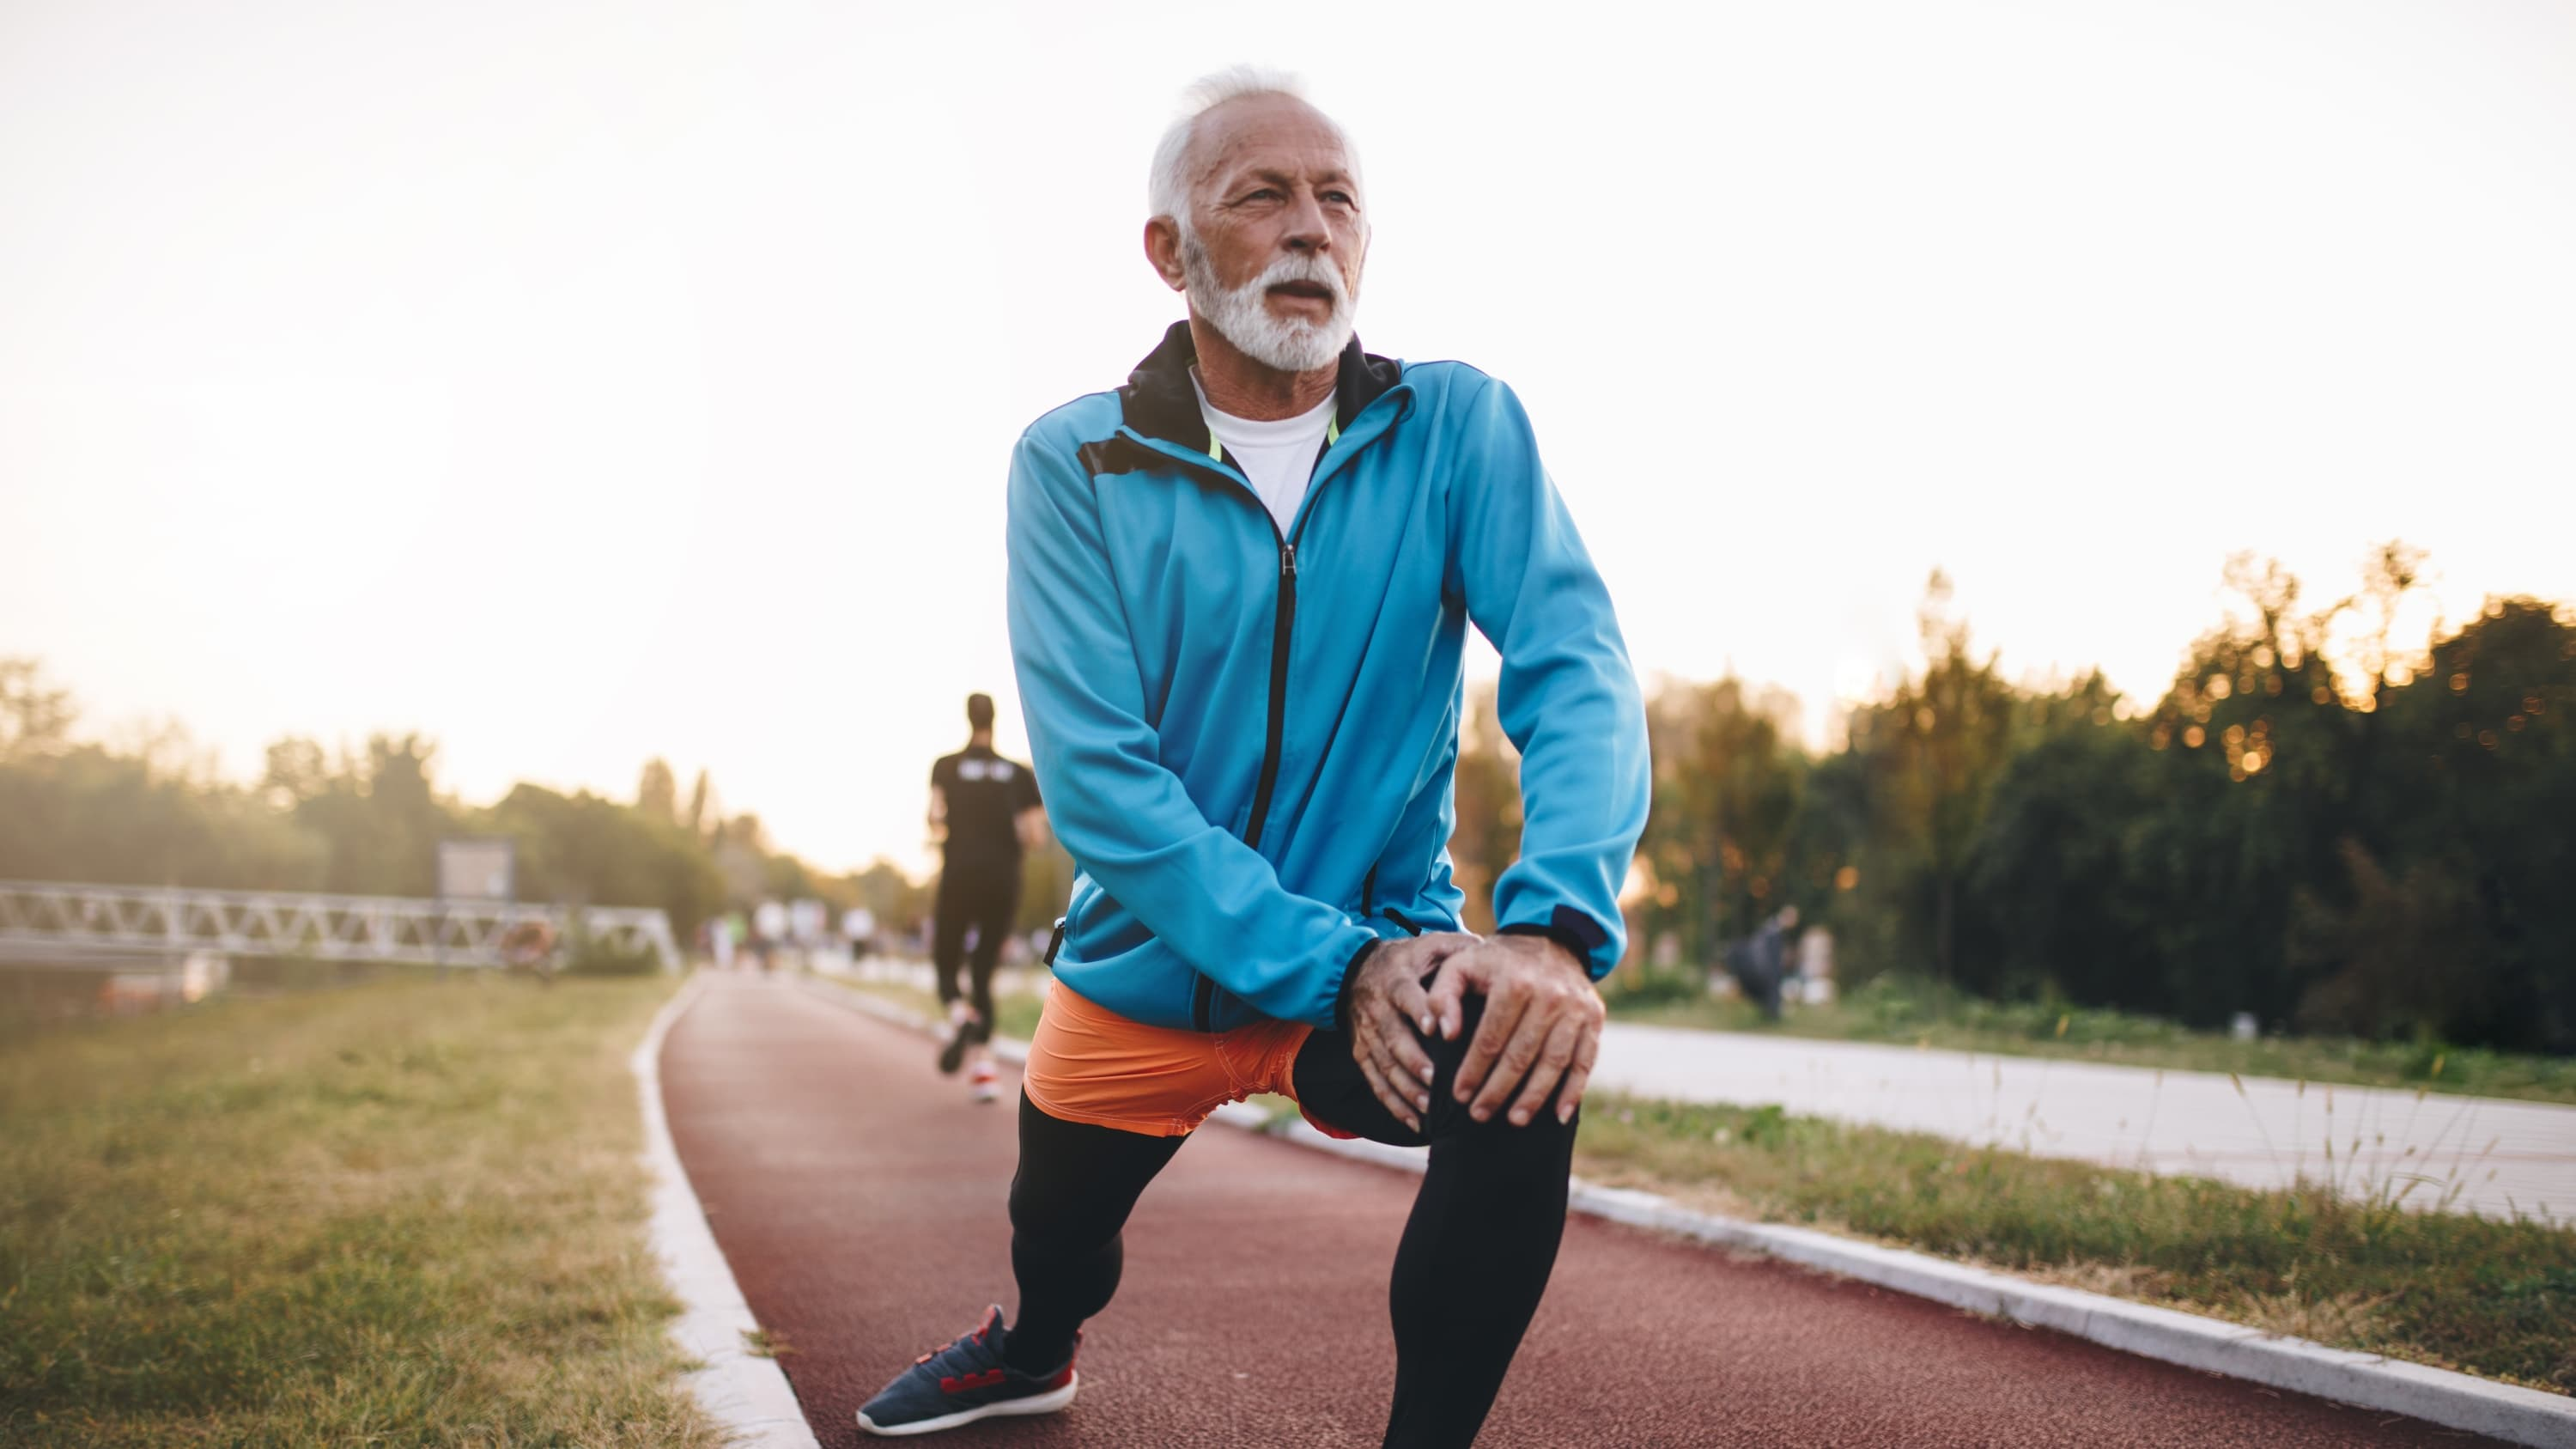 A senior man who may have had his heart checked with an echocardiogram is now stretching before jogging